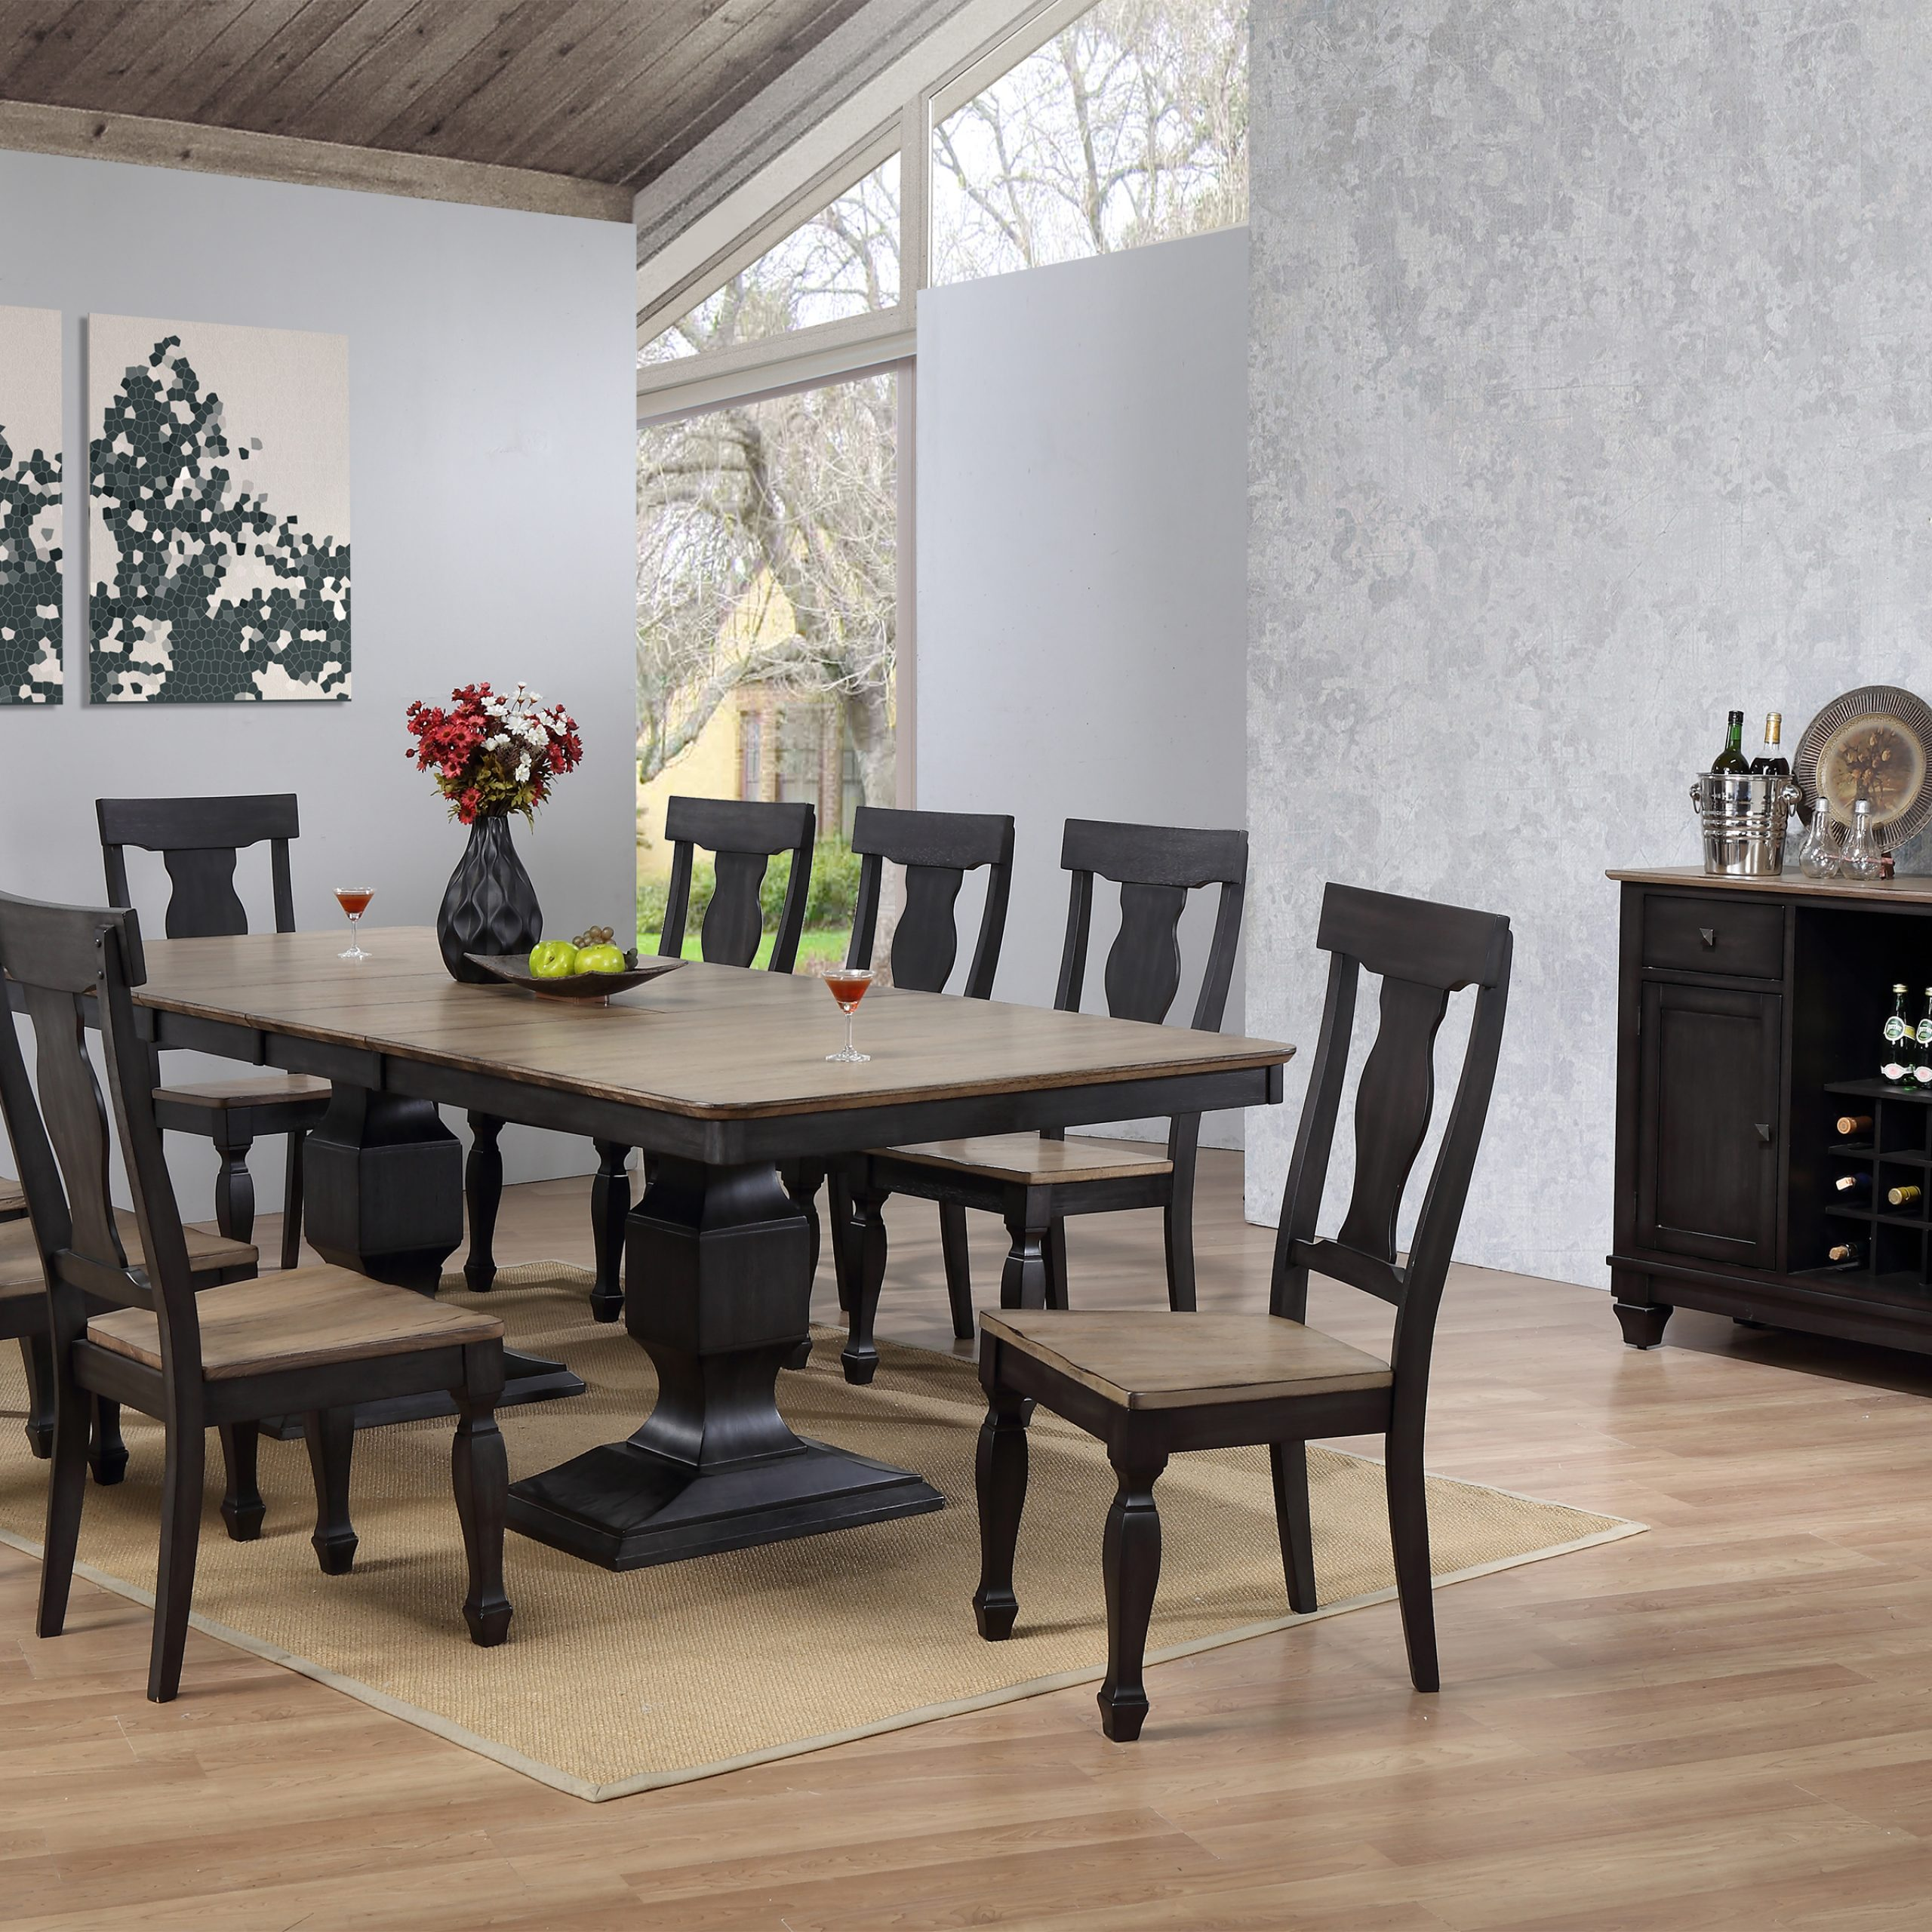 Charcoal Transitional 6 Seating Rectangular Dining Tables Within Latest Nysha 10 Piece Dining Room Set, Charcoal & Oak Wood (View 13 of 25)